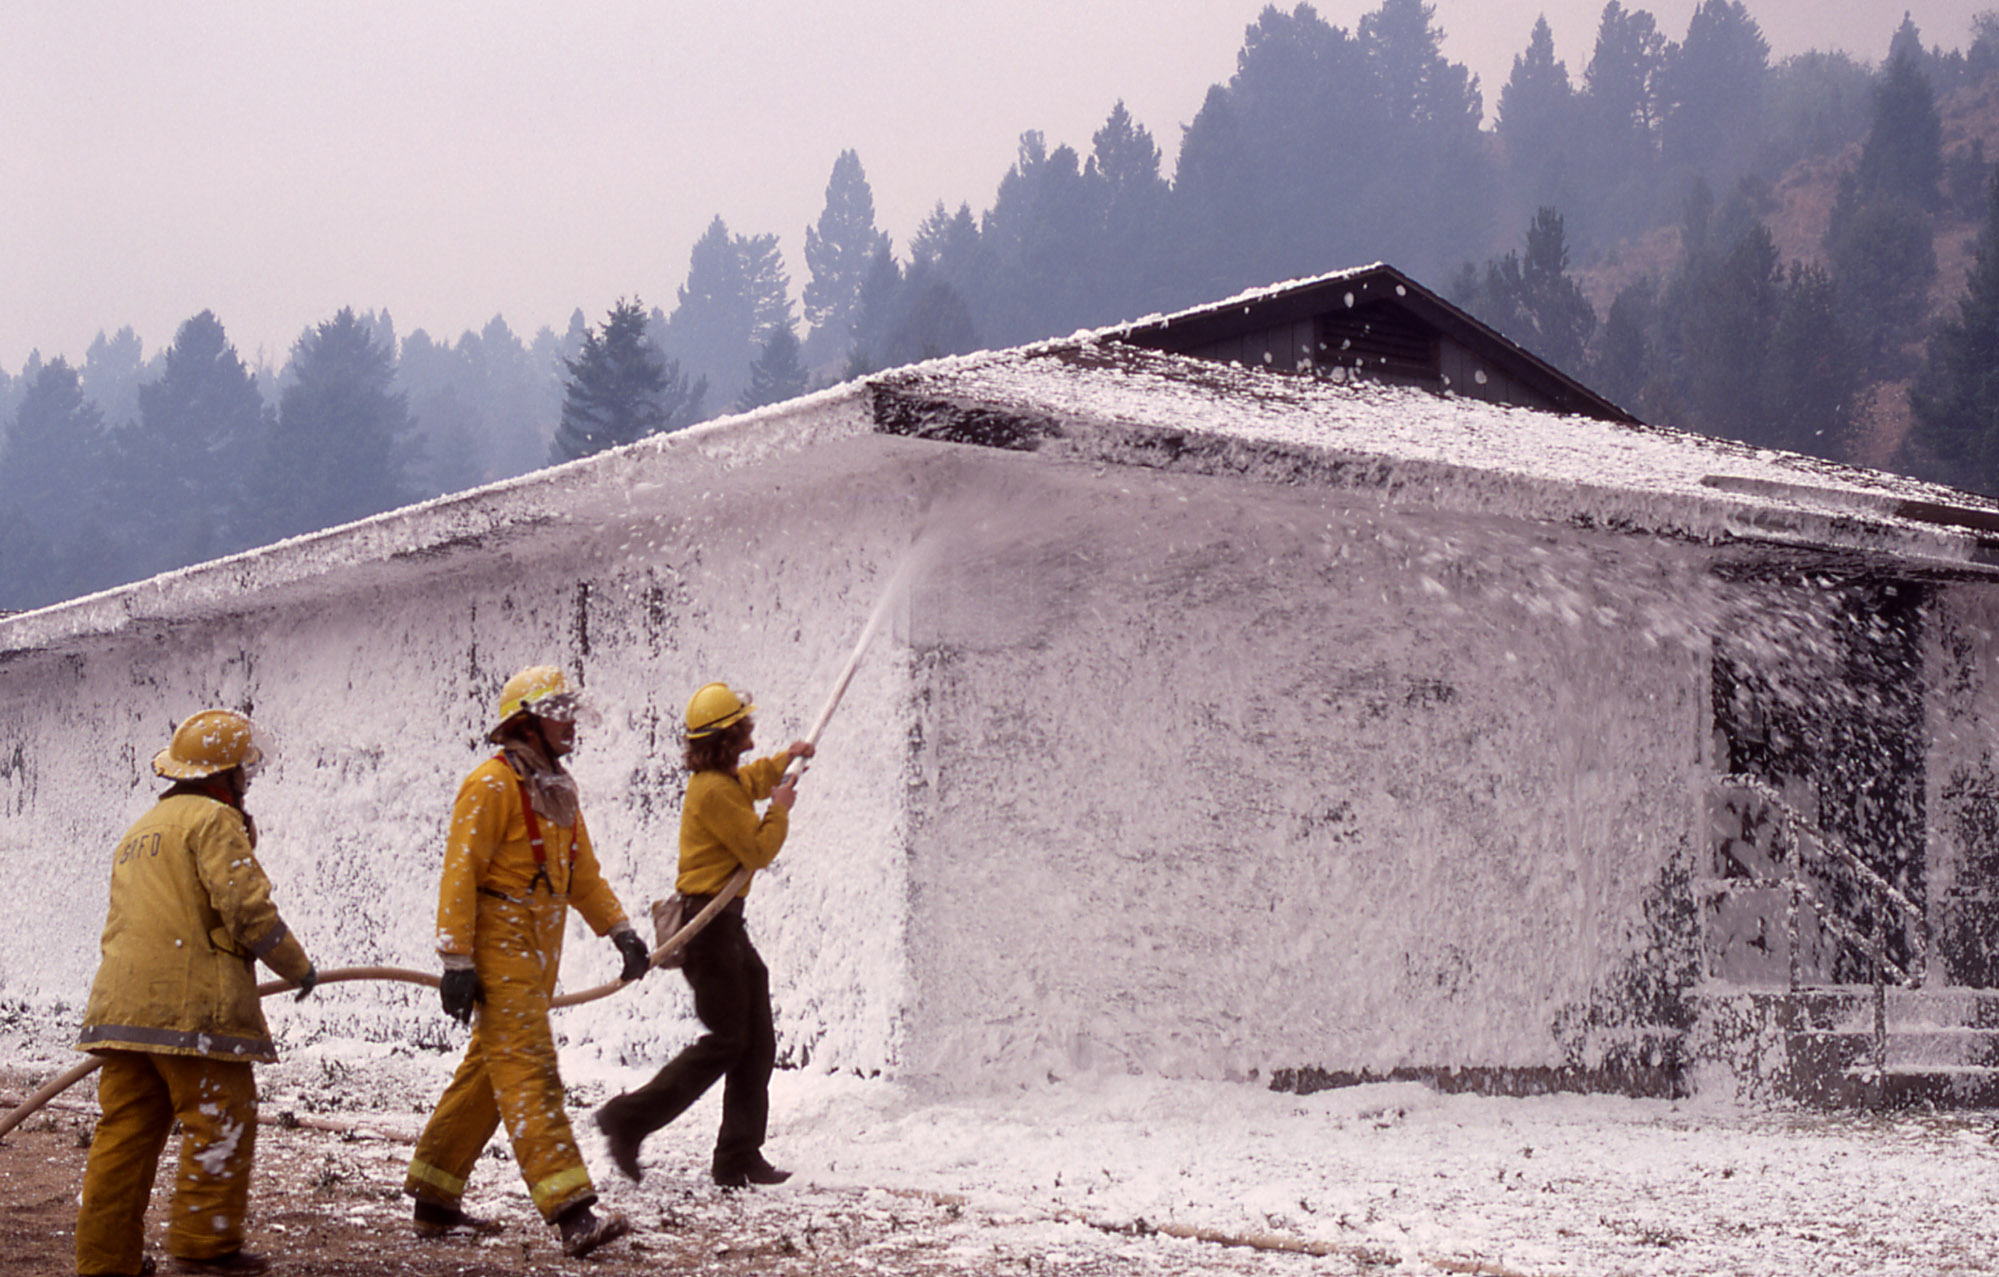 firefighters spraying foam on a building